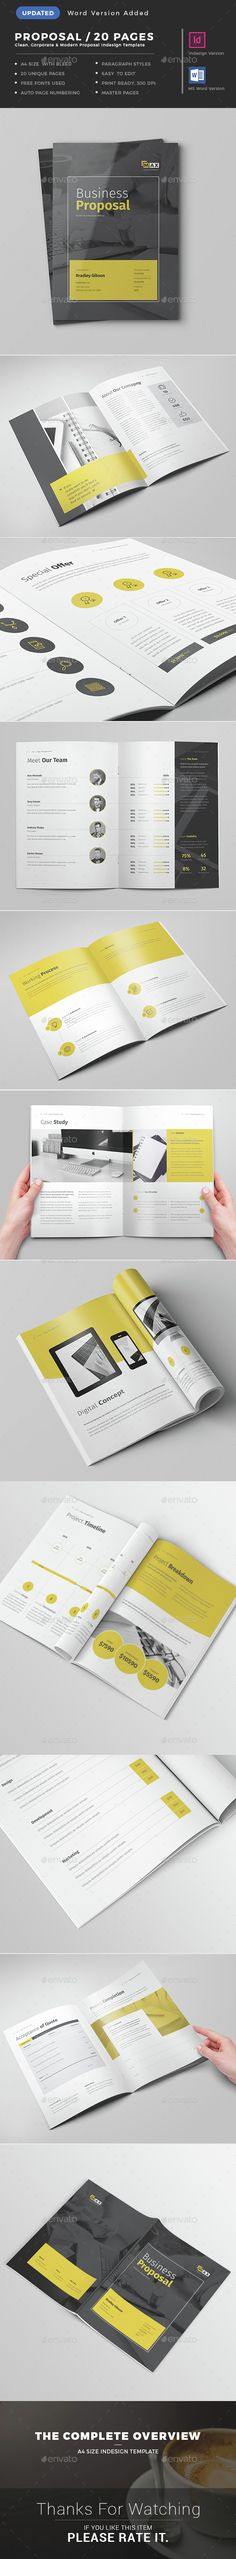 Commercial Proposal Format Endearing Commercial Proposal Template #09  Commercial Proposal  Pinterest .